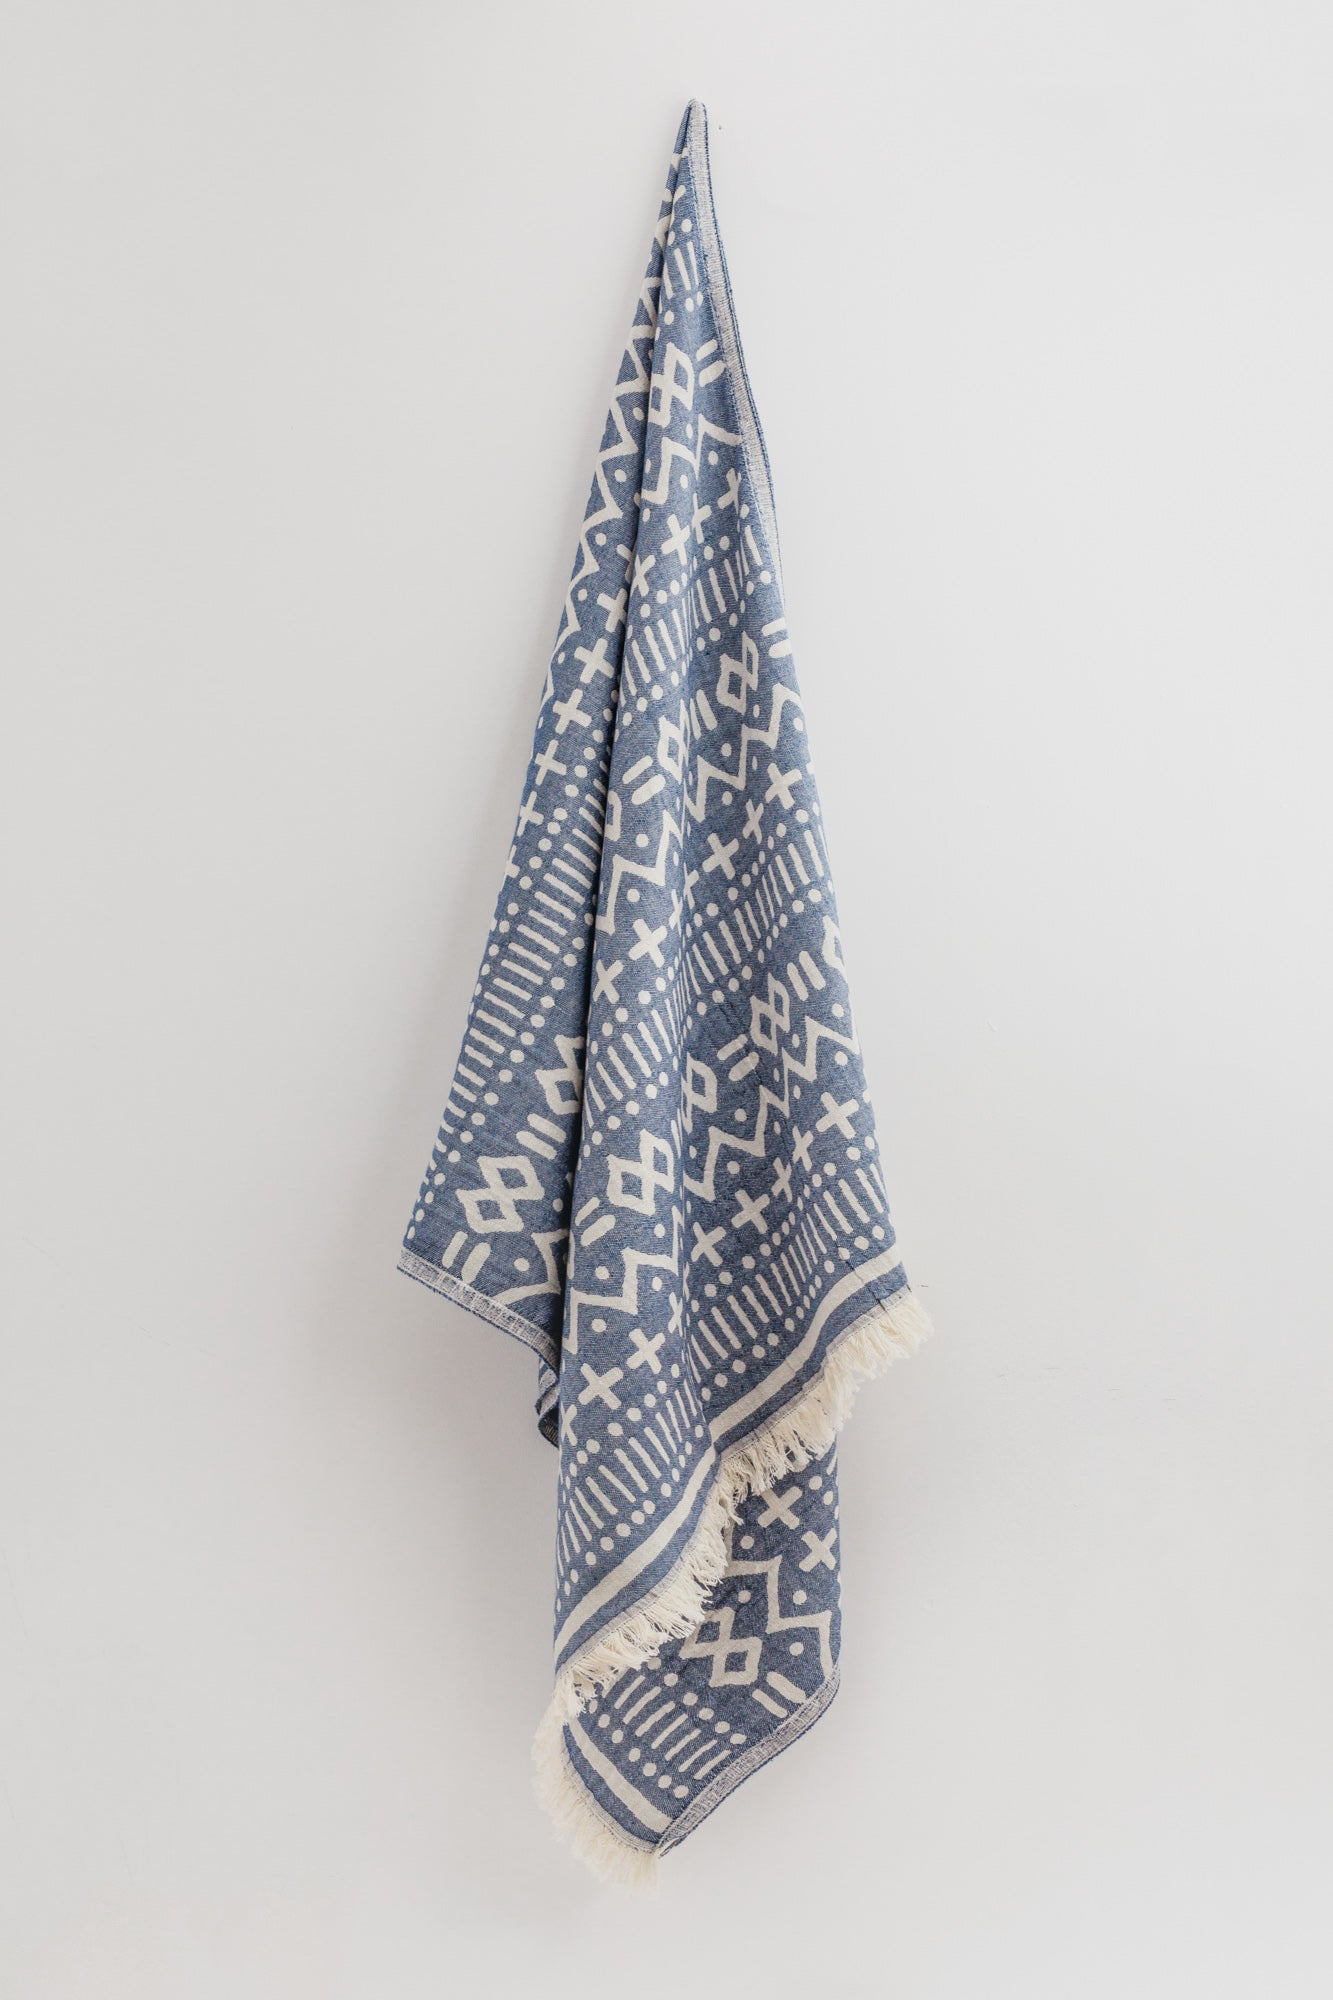 Maghreb Navy Turkish Towel Image 3